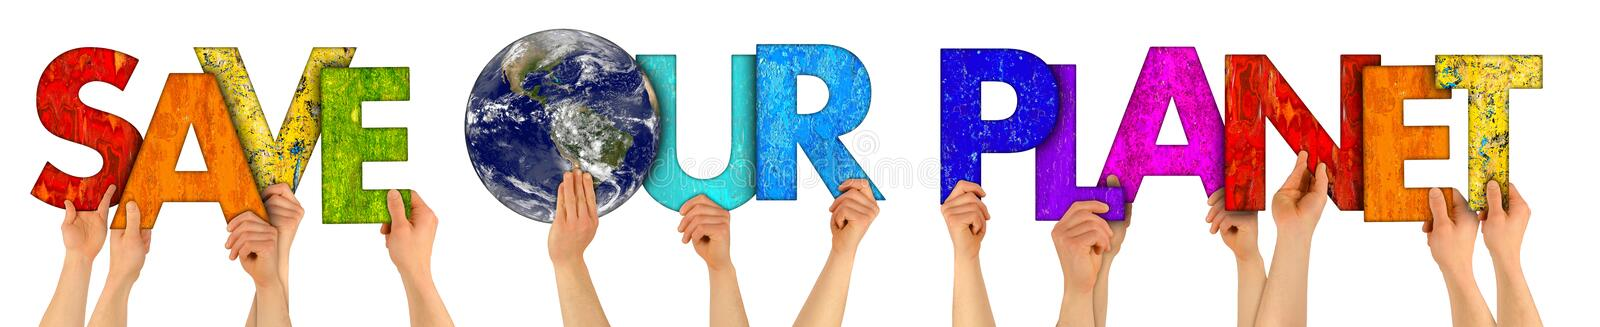 Activist people holding up colorful letter with words save our planet isolated white background. climate change fridays for future royalty free stock photos